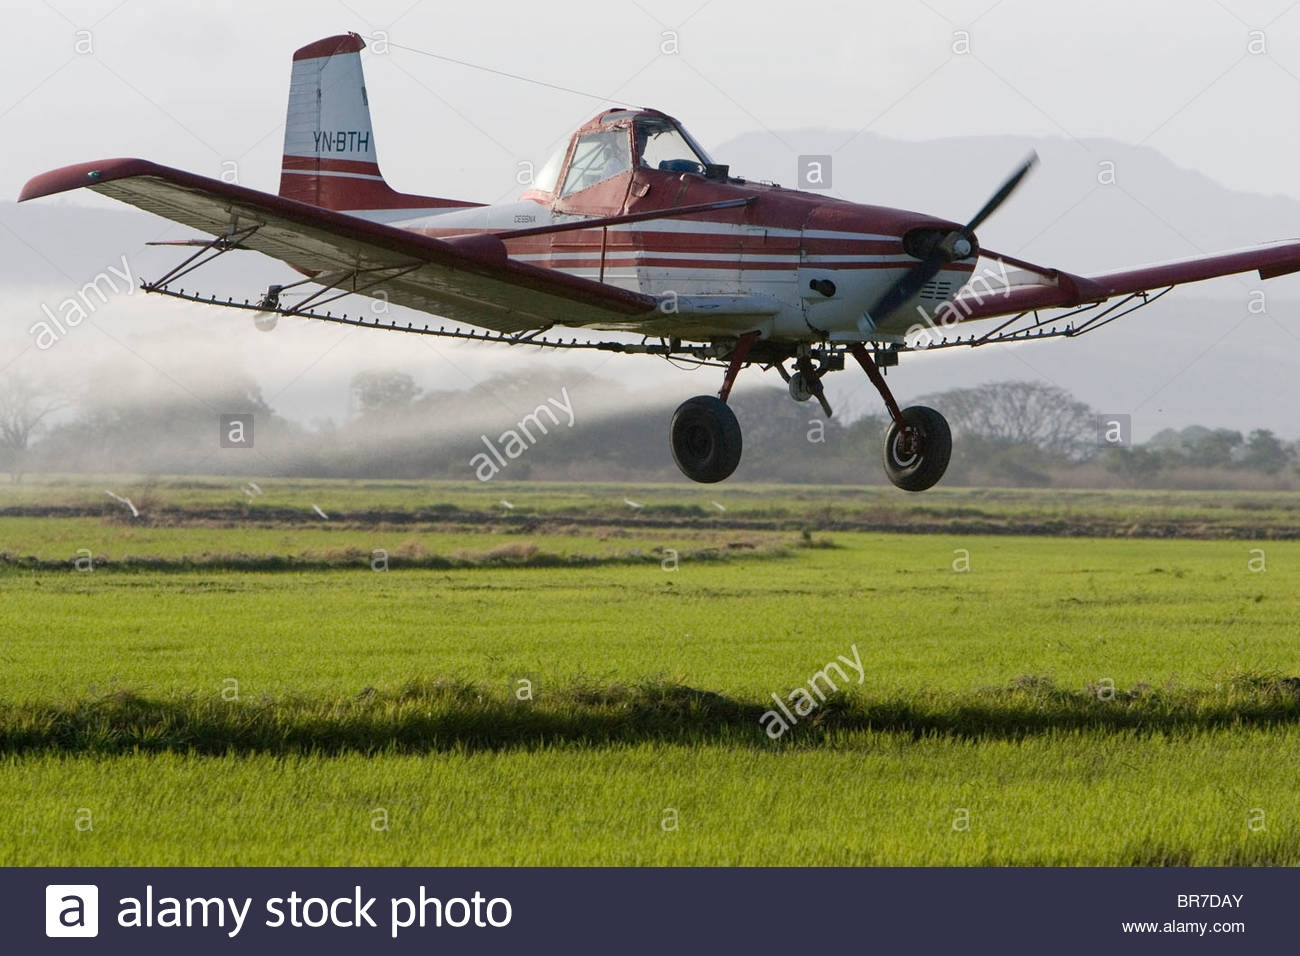 Cropduster Stock Photos Cropduster Stock Images Alamy